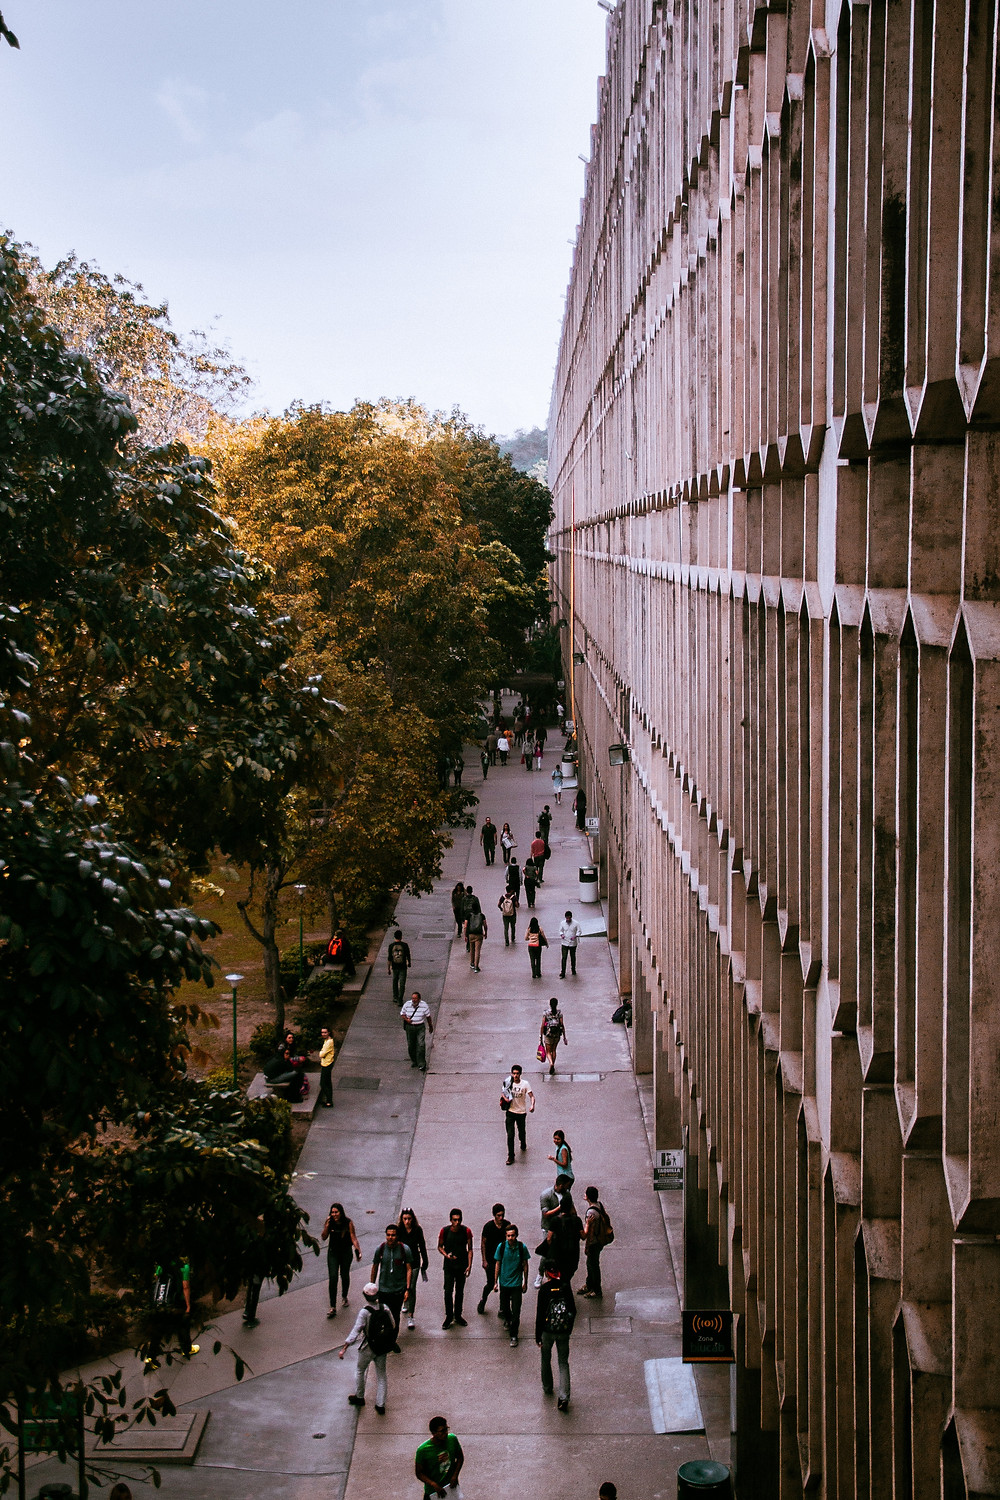 University building with students outside: The Parents' Guide to